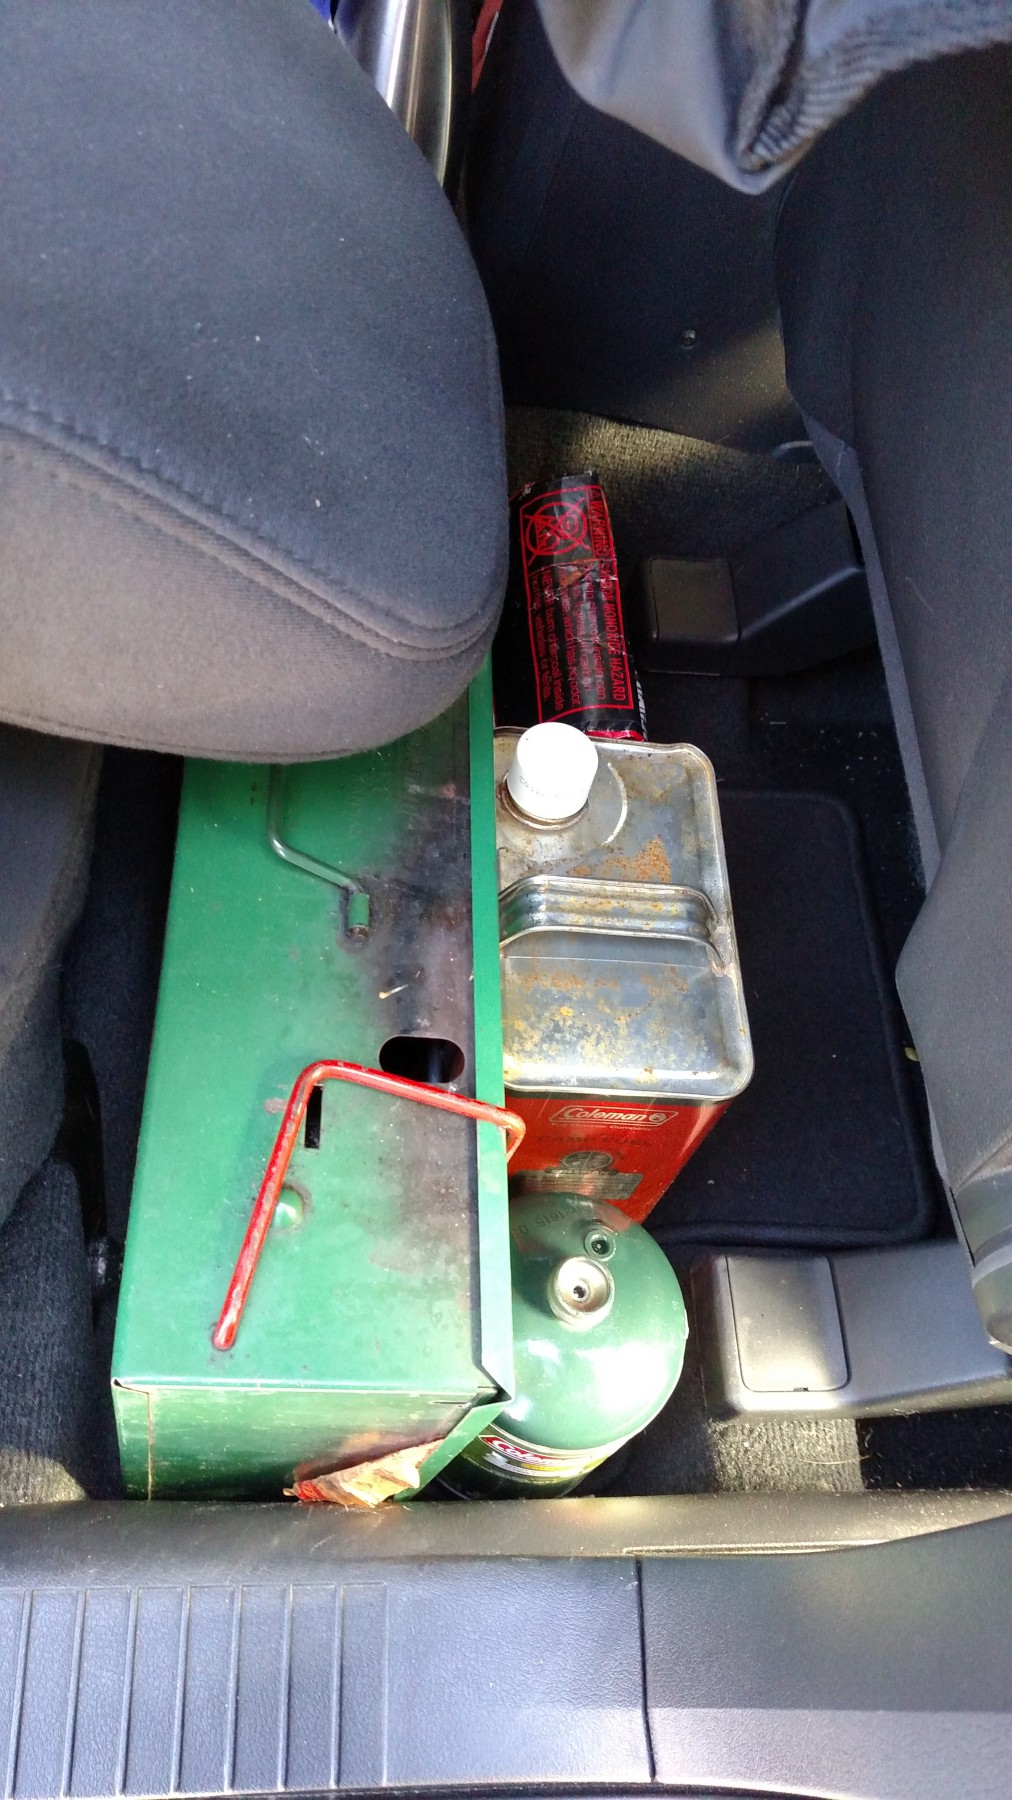 Bill S Setup For Sleeping Camping In A Jeep Patriot Suv Rving